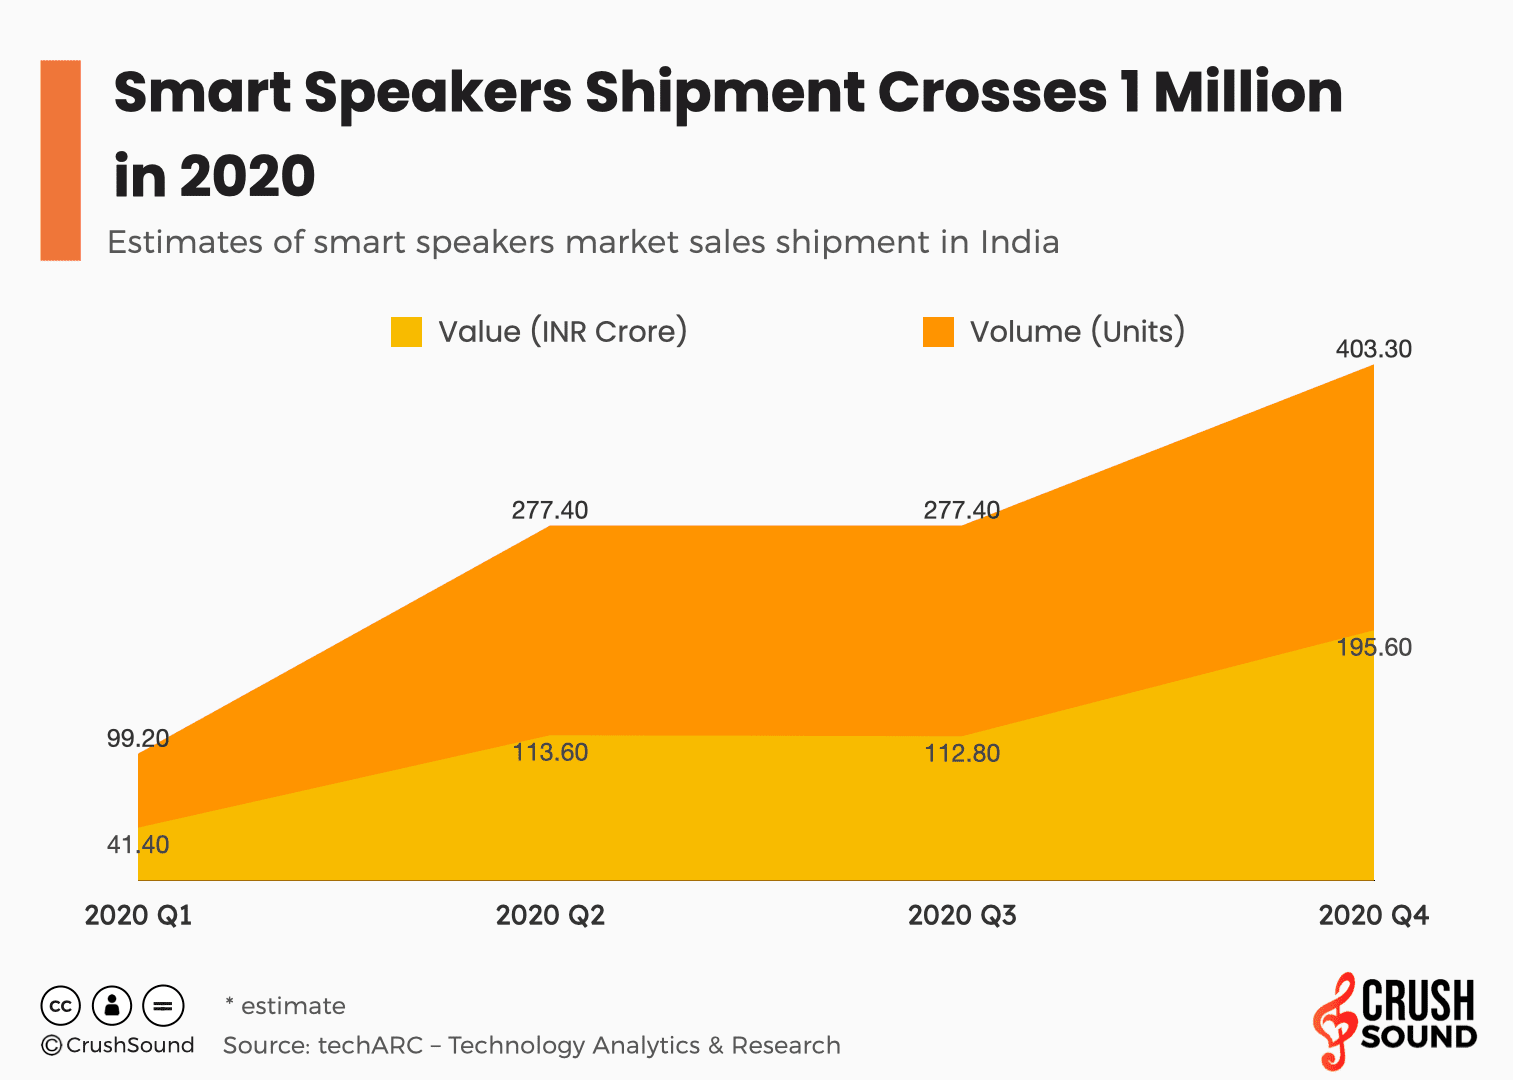 Smart Speakers Shipments India 2020 - The 7 Best Speaker Brands In India You Must Know! (2021)